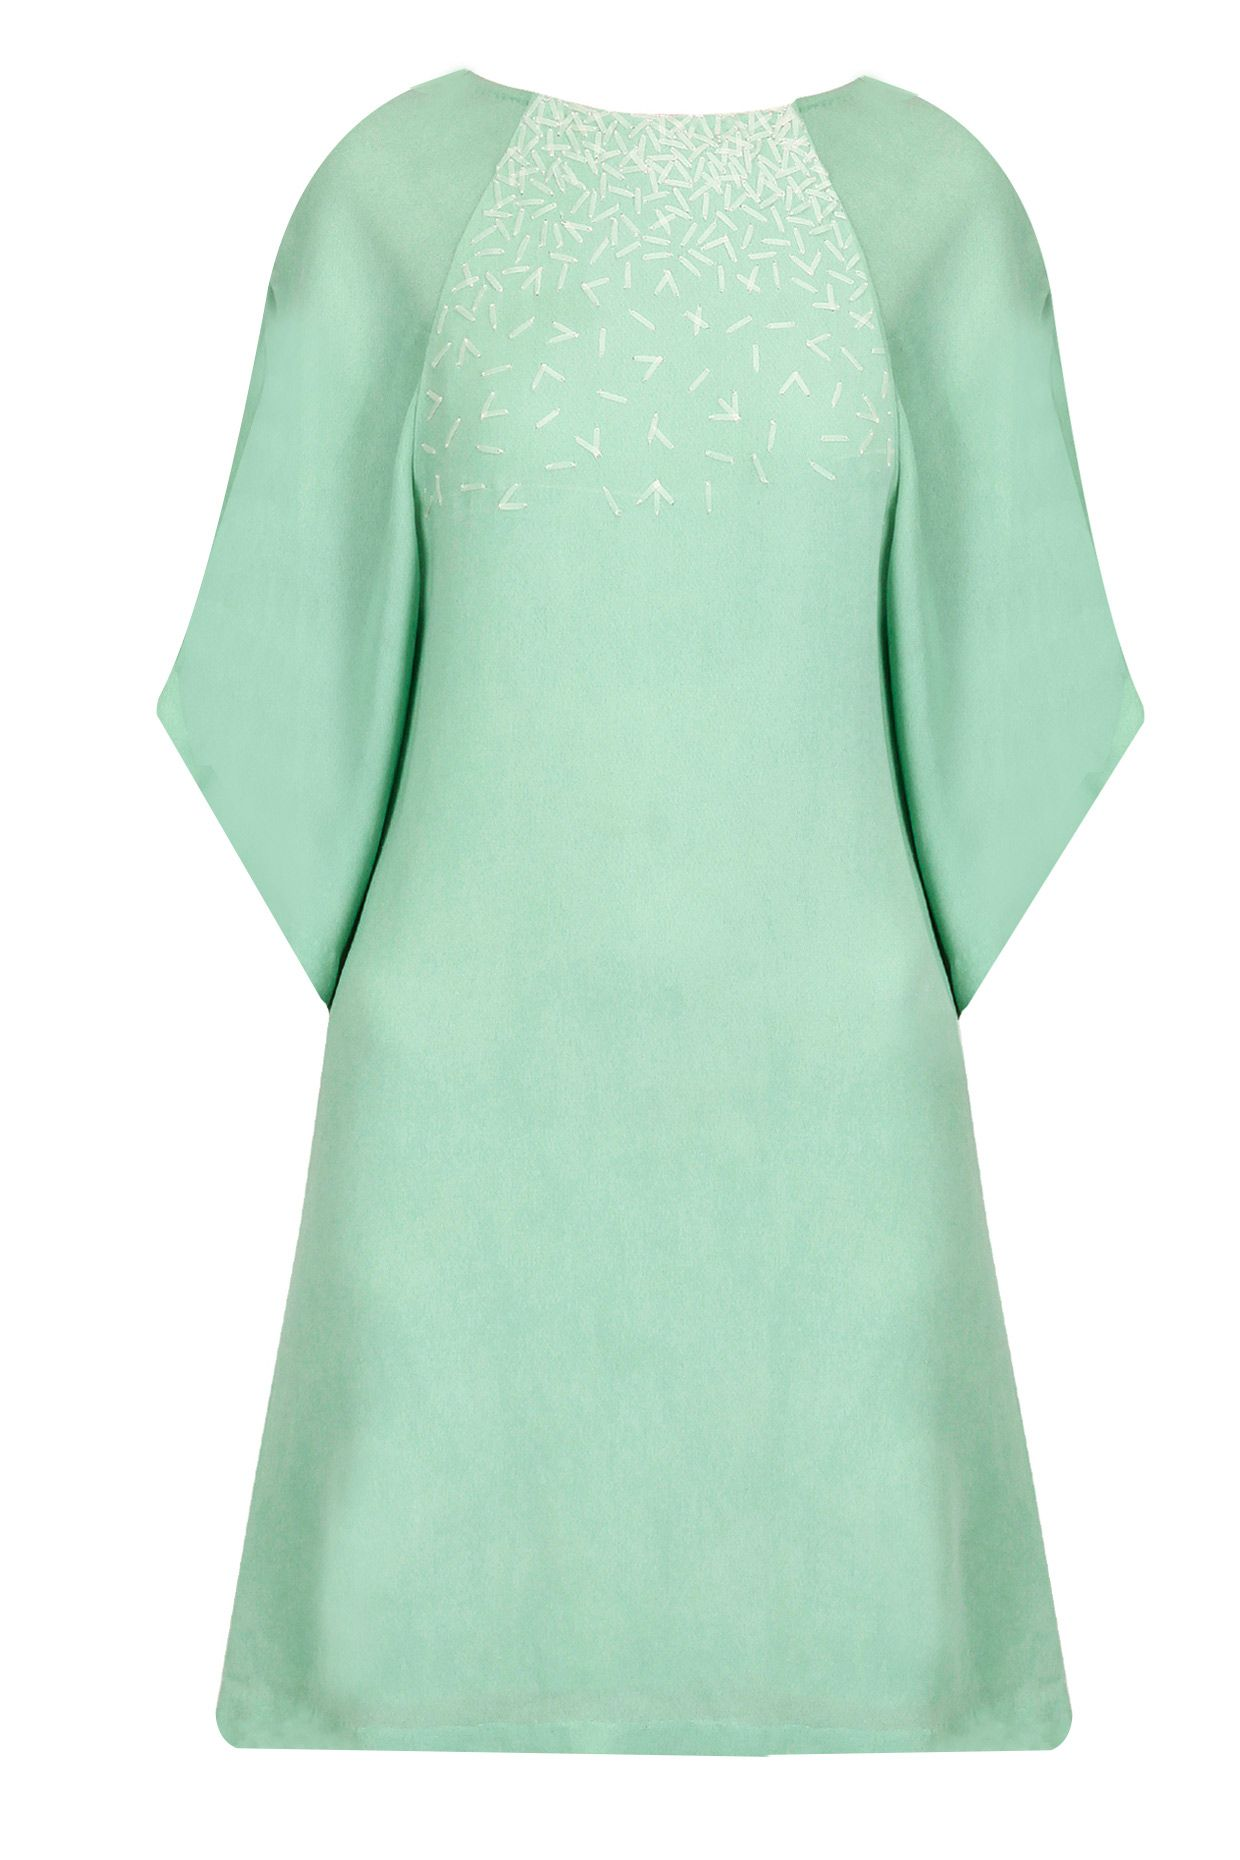 Urban green sequins embellished short dress available only at